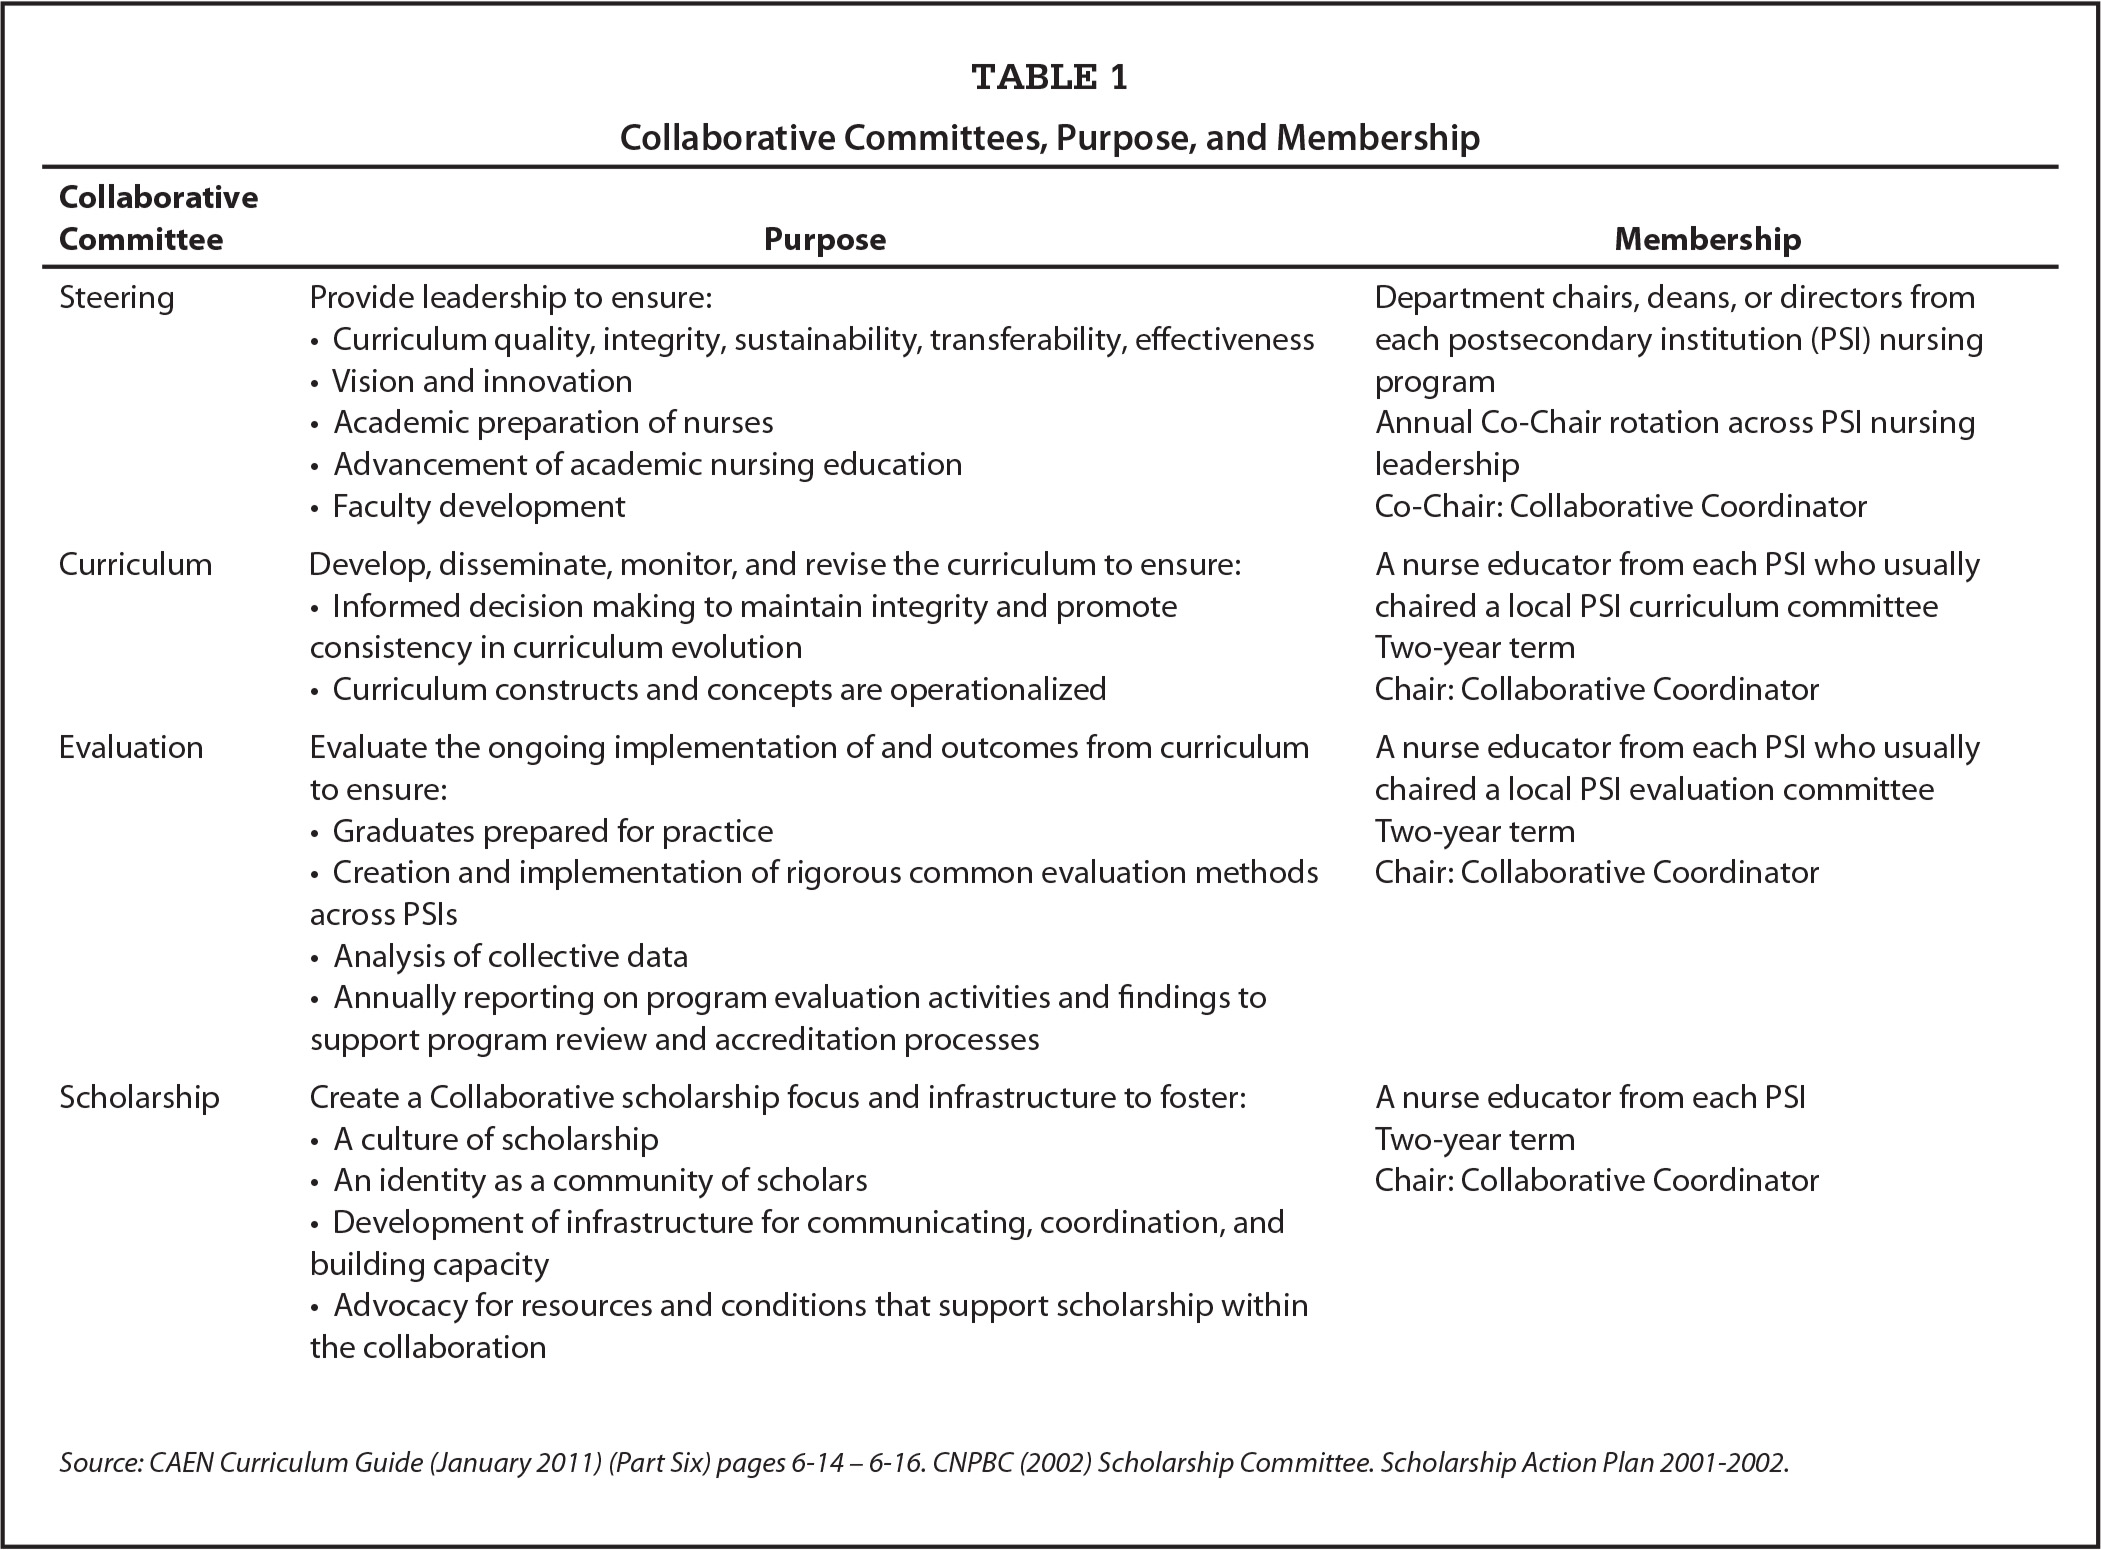 Collaborative Committees, Purpose, and Membership